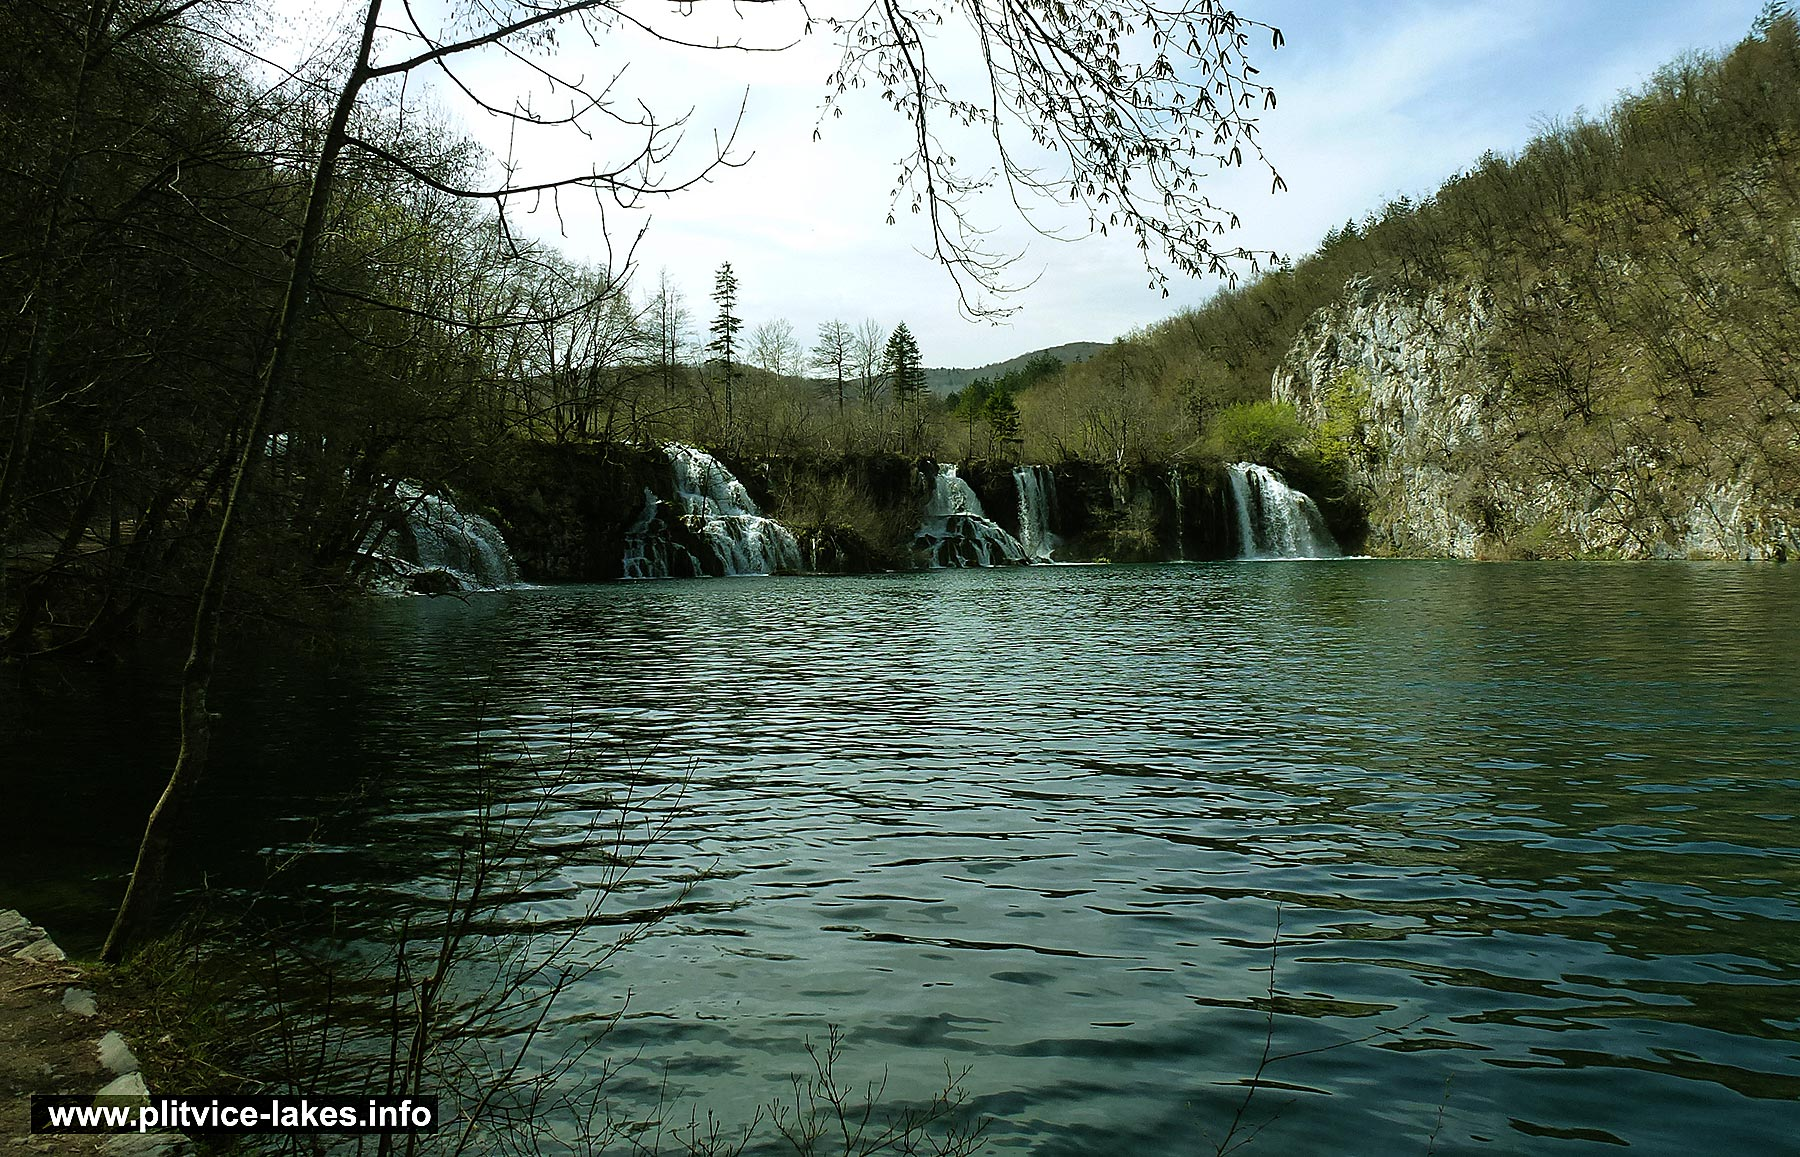 Walking along Milanovac lake with views over waterfalls